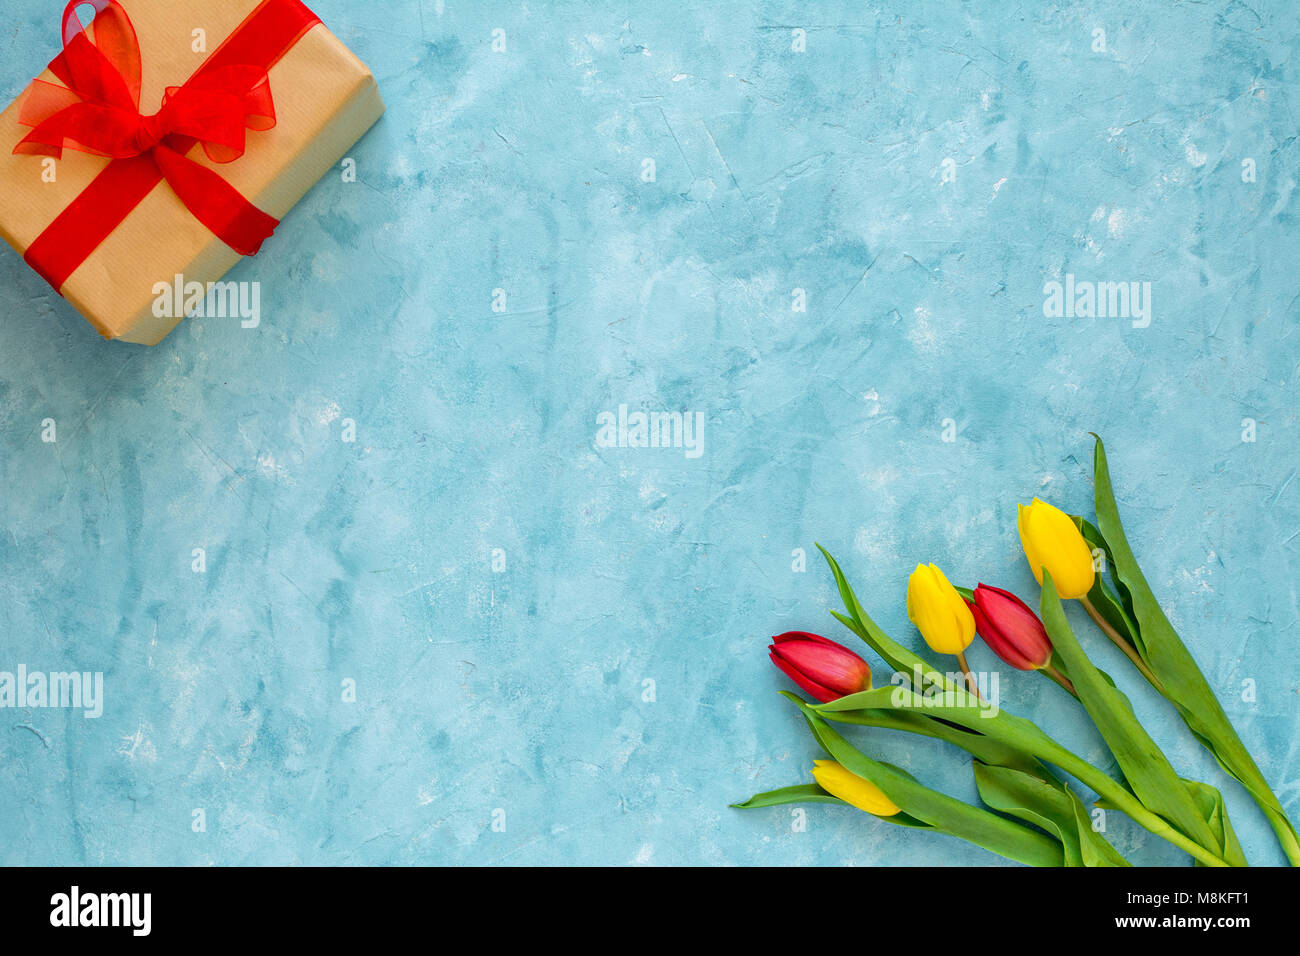 Background For Birthday Woman Day Or Mothers Fresh Tulips Spring Flowers Copy Space